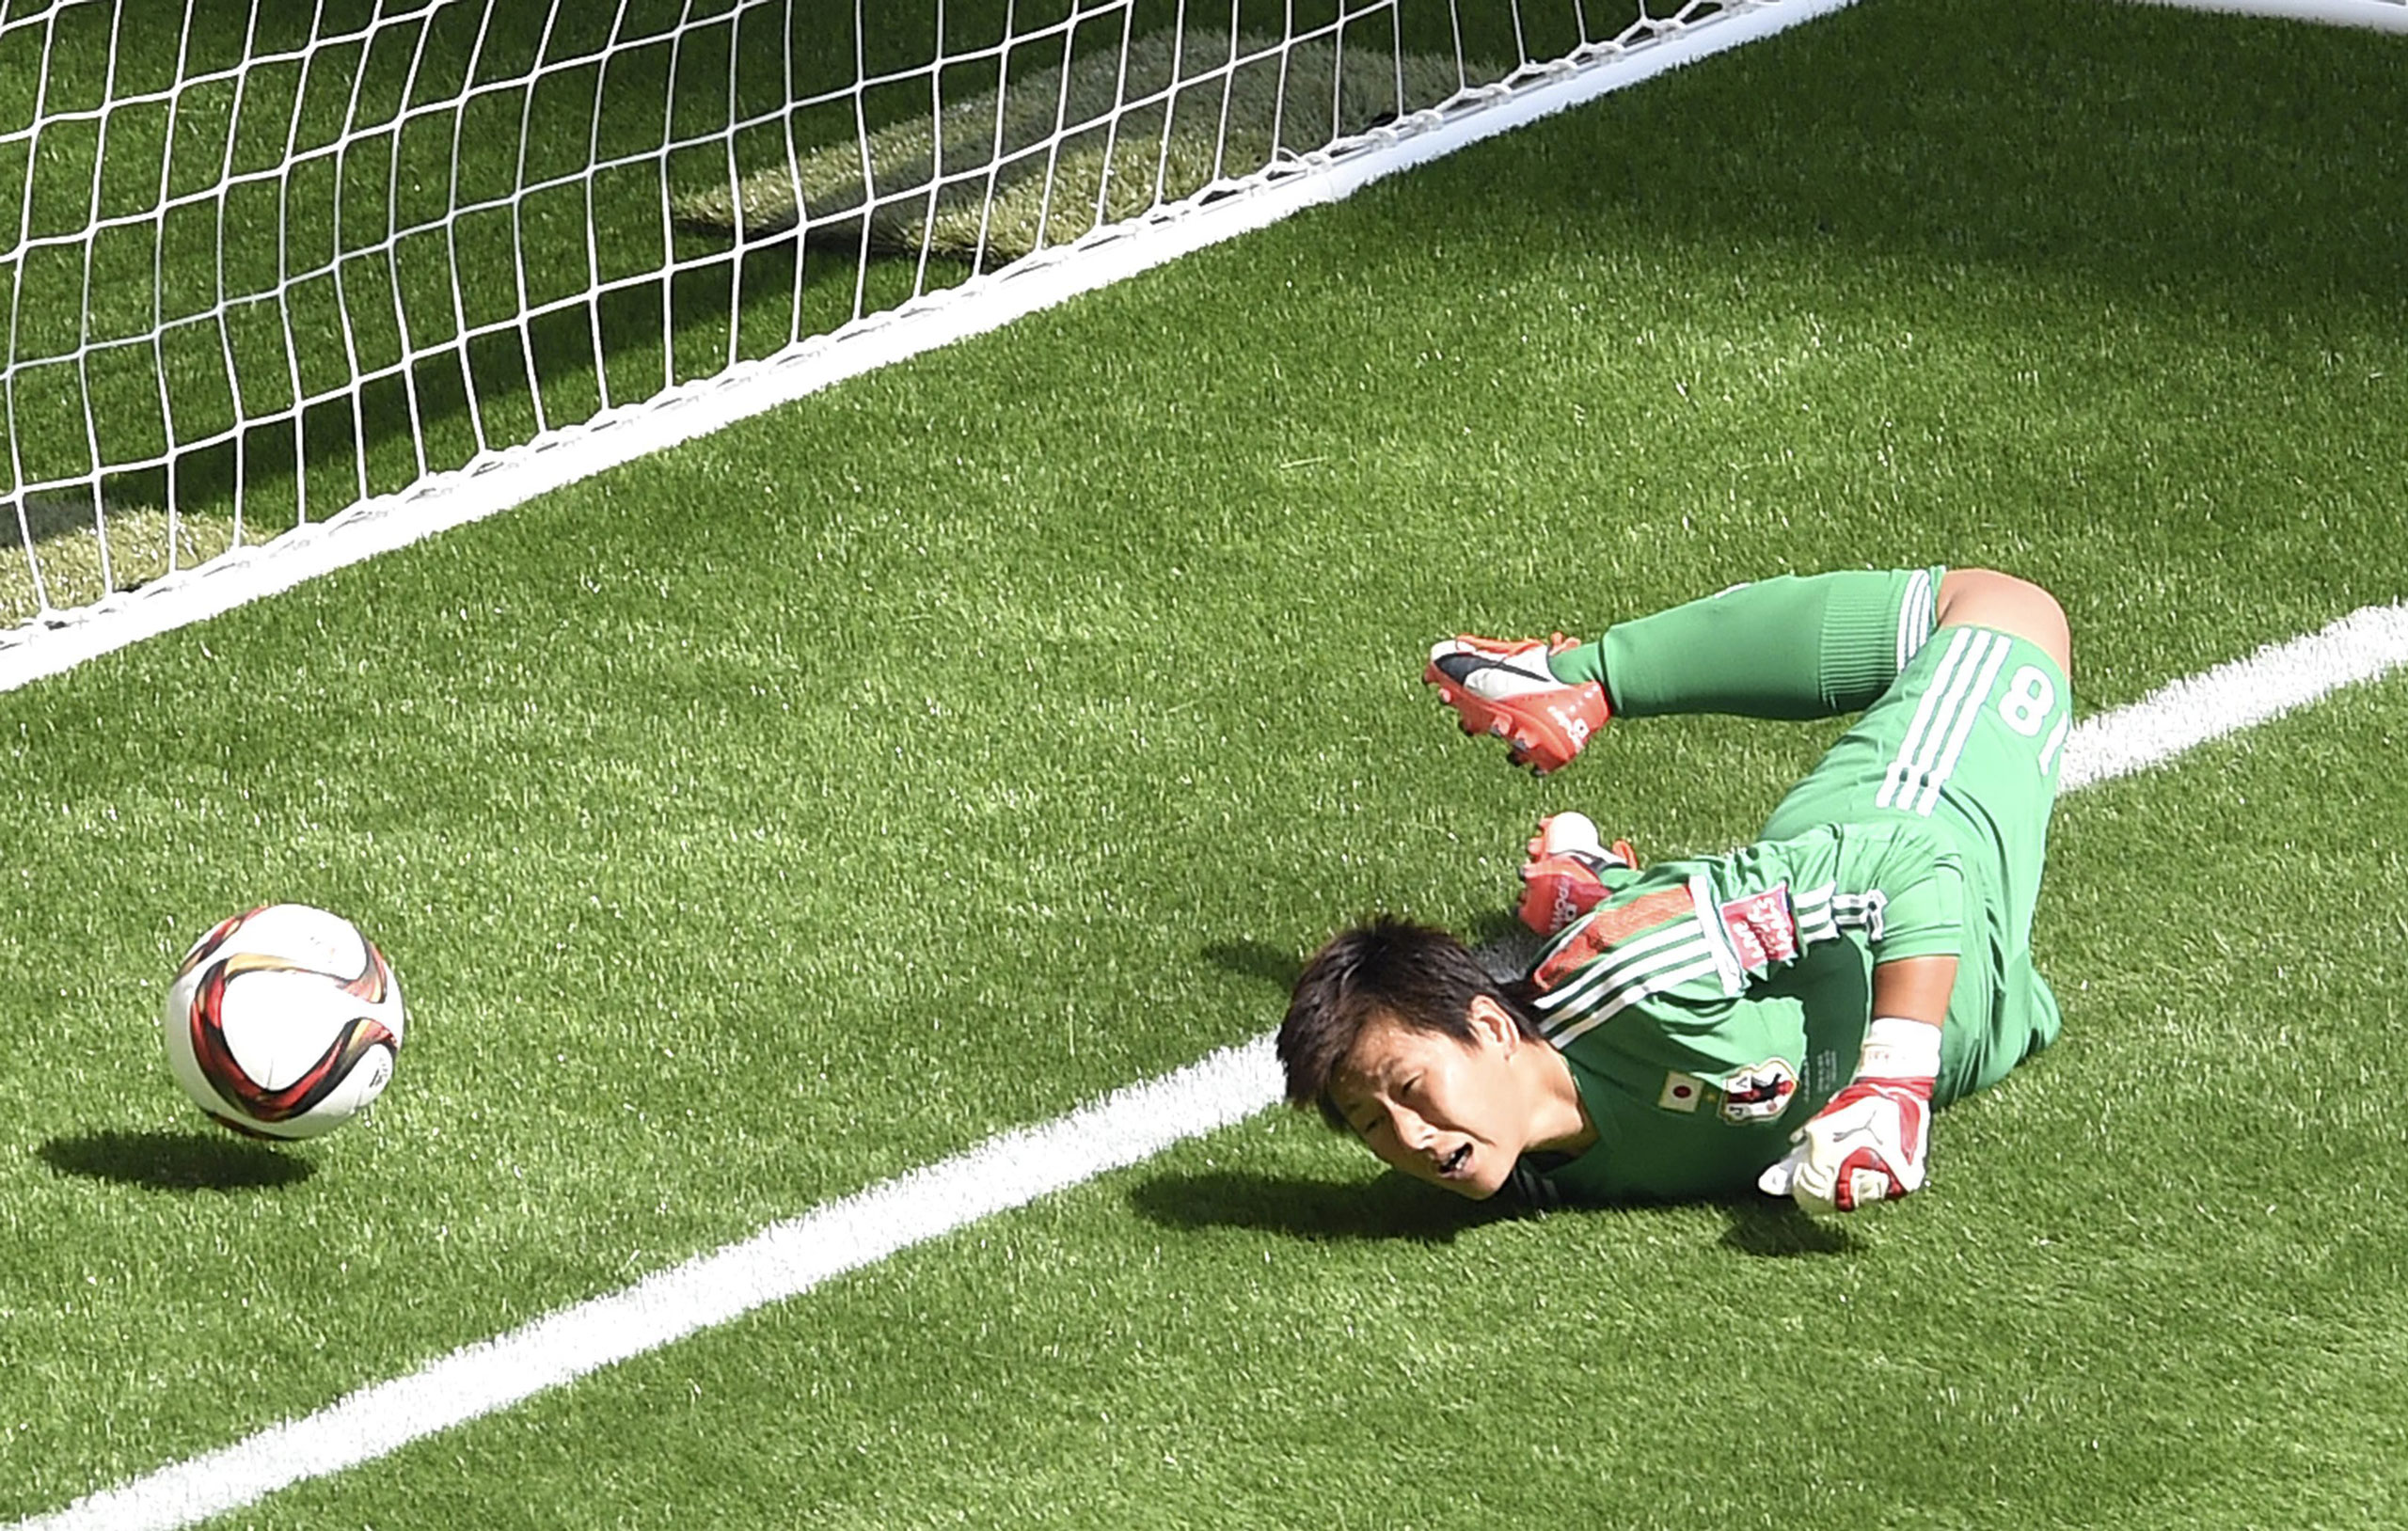 Japan's goalkeeper Kaihori Ayumi fails to hold the ball during the final match of the 2015 FIFA Women's World Cup at the BC Place Stadium in Vancouver on July 5, 2015.